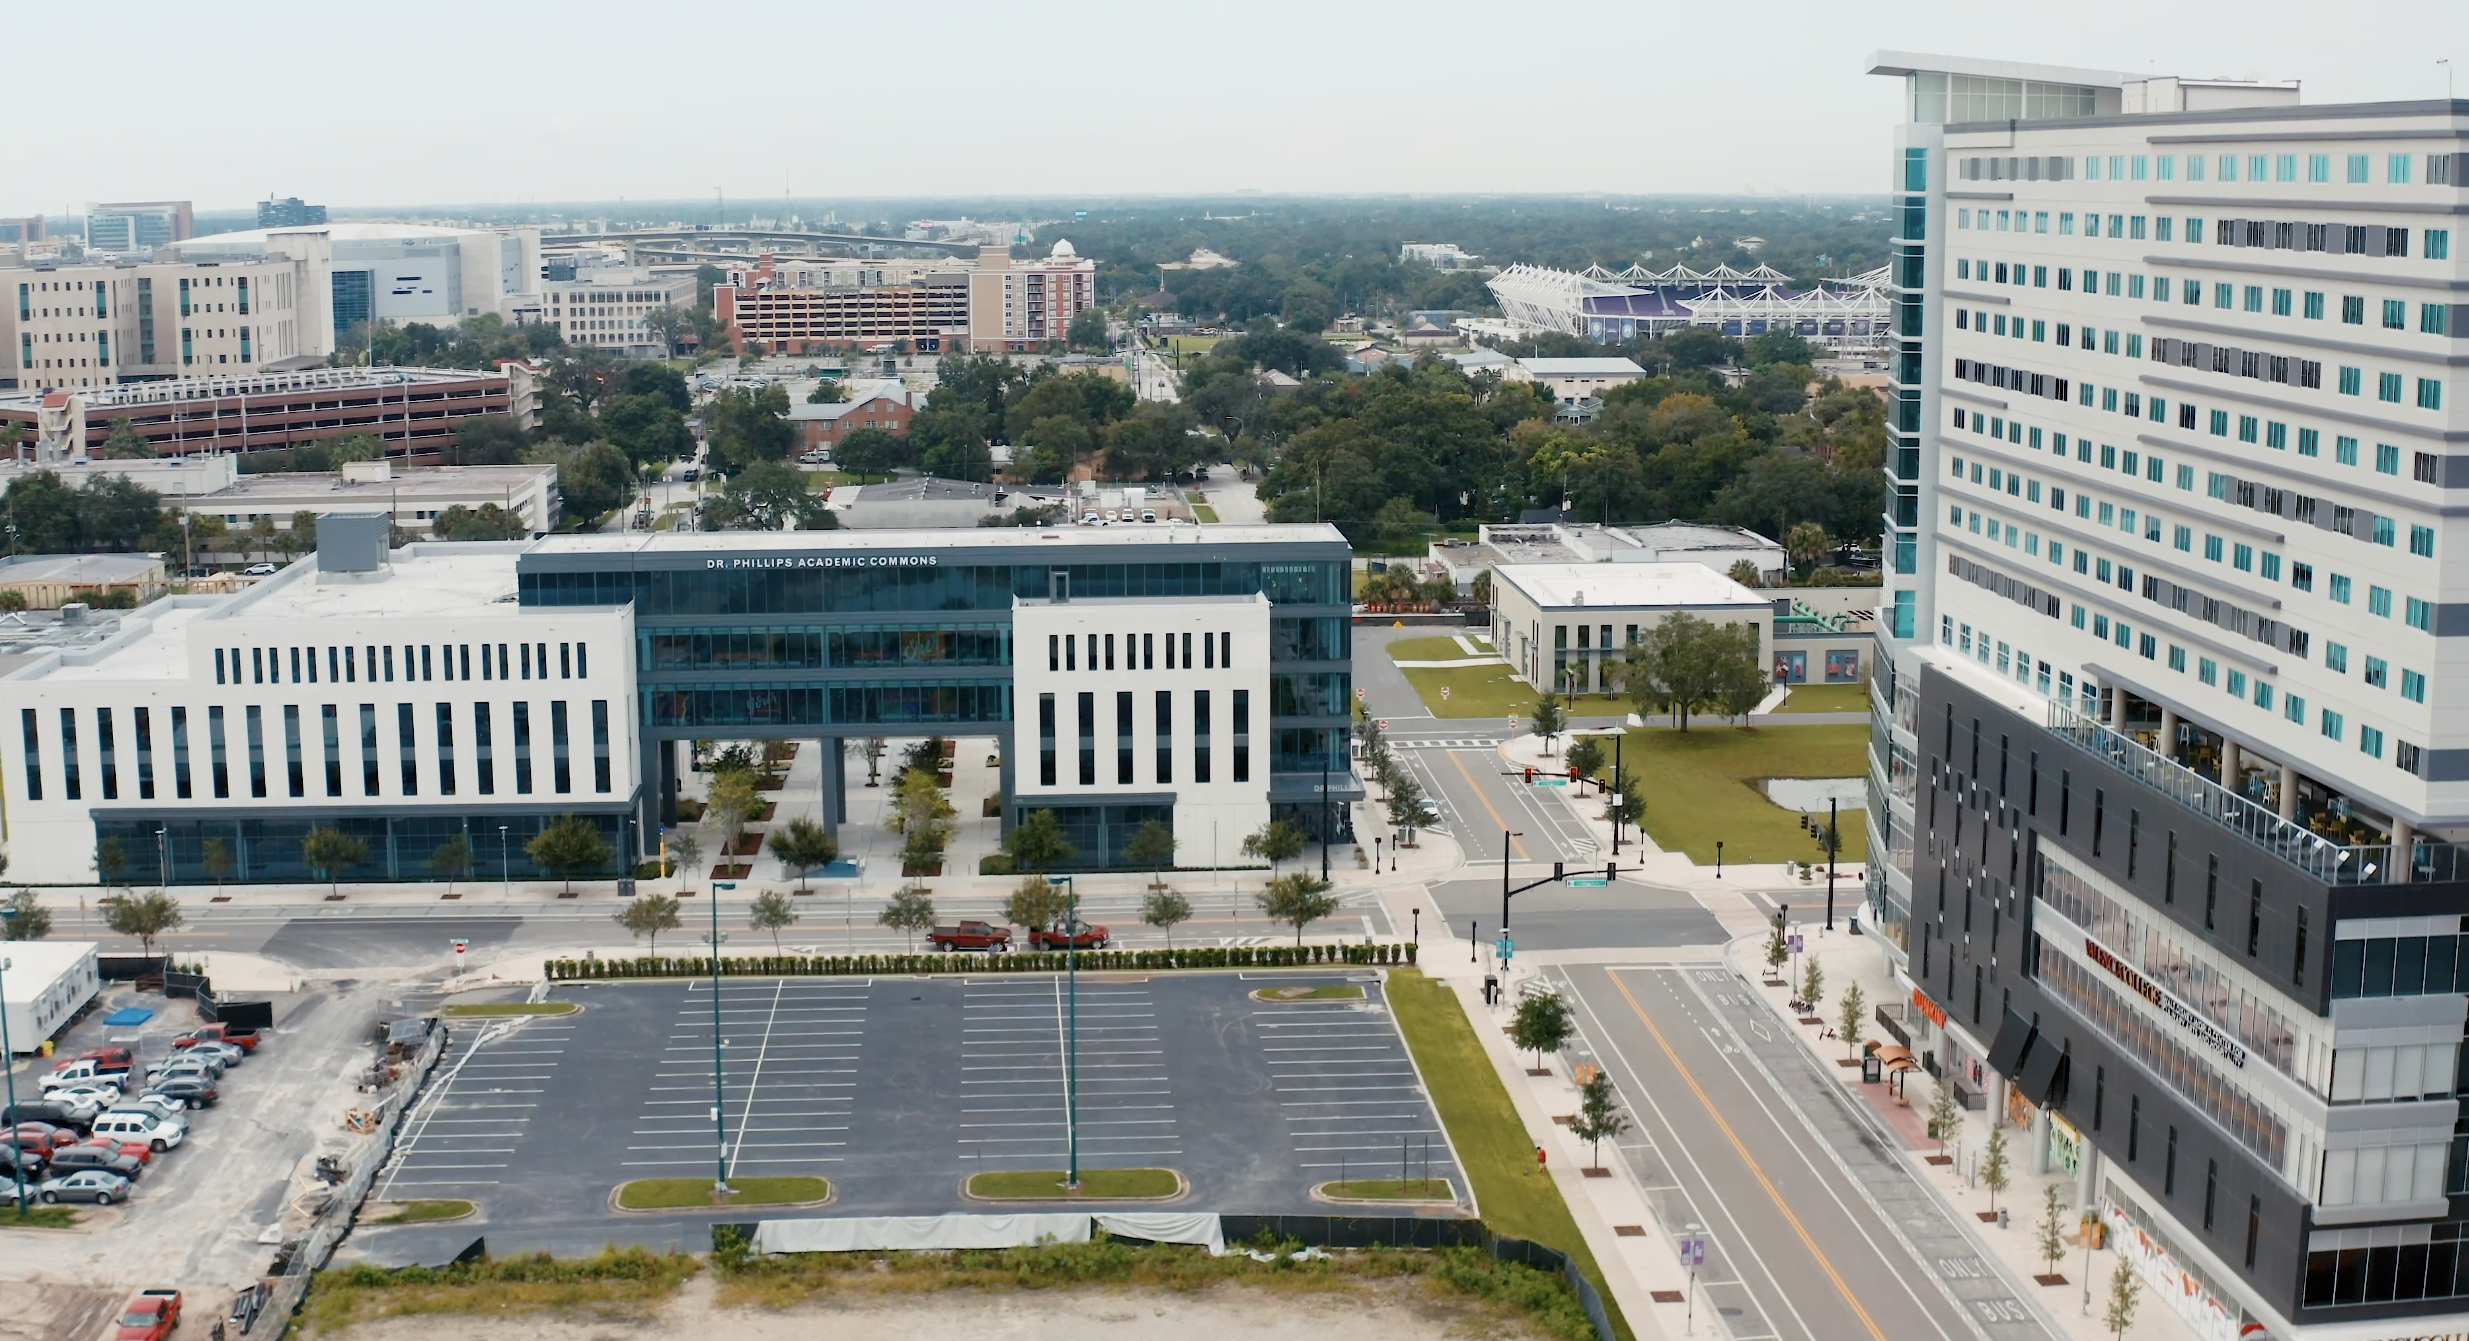 Ucf Calendar Spring 2021 Spring 2021: What's Open at UCF Downtown | UCF Downtown